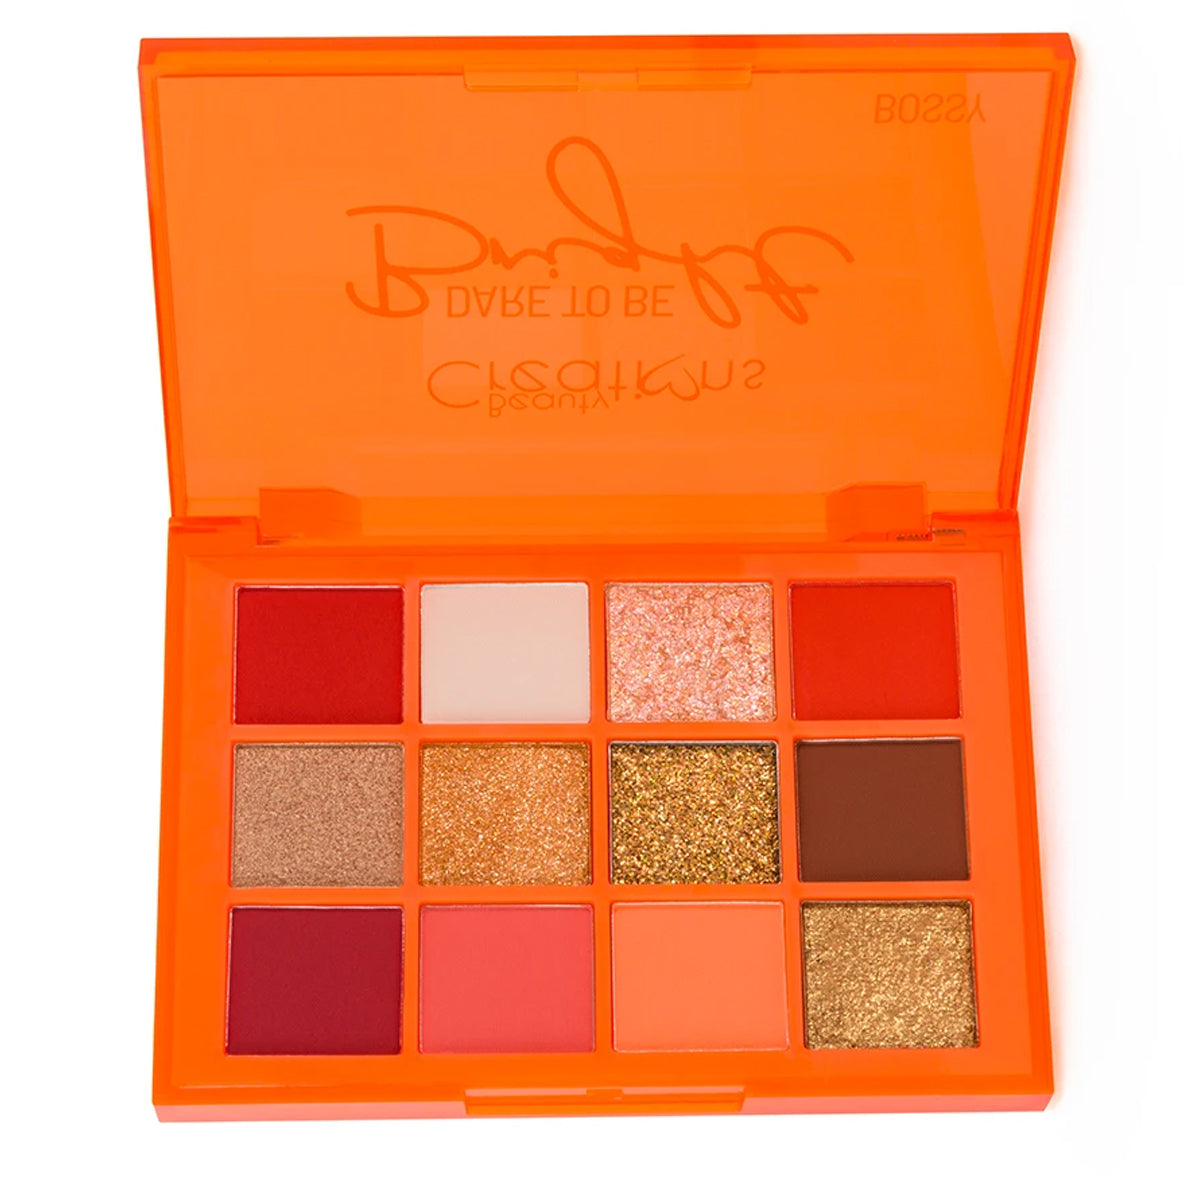 Paleta bossy eyeshadow palette - beauty creations.